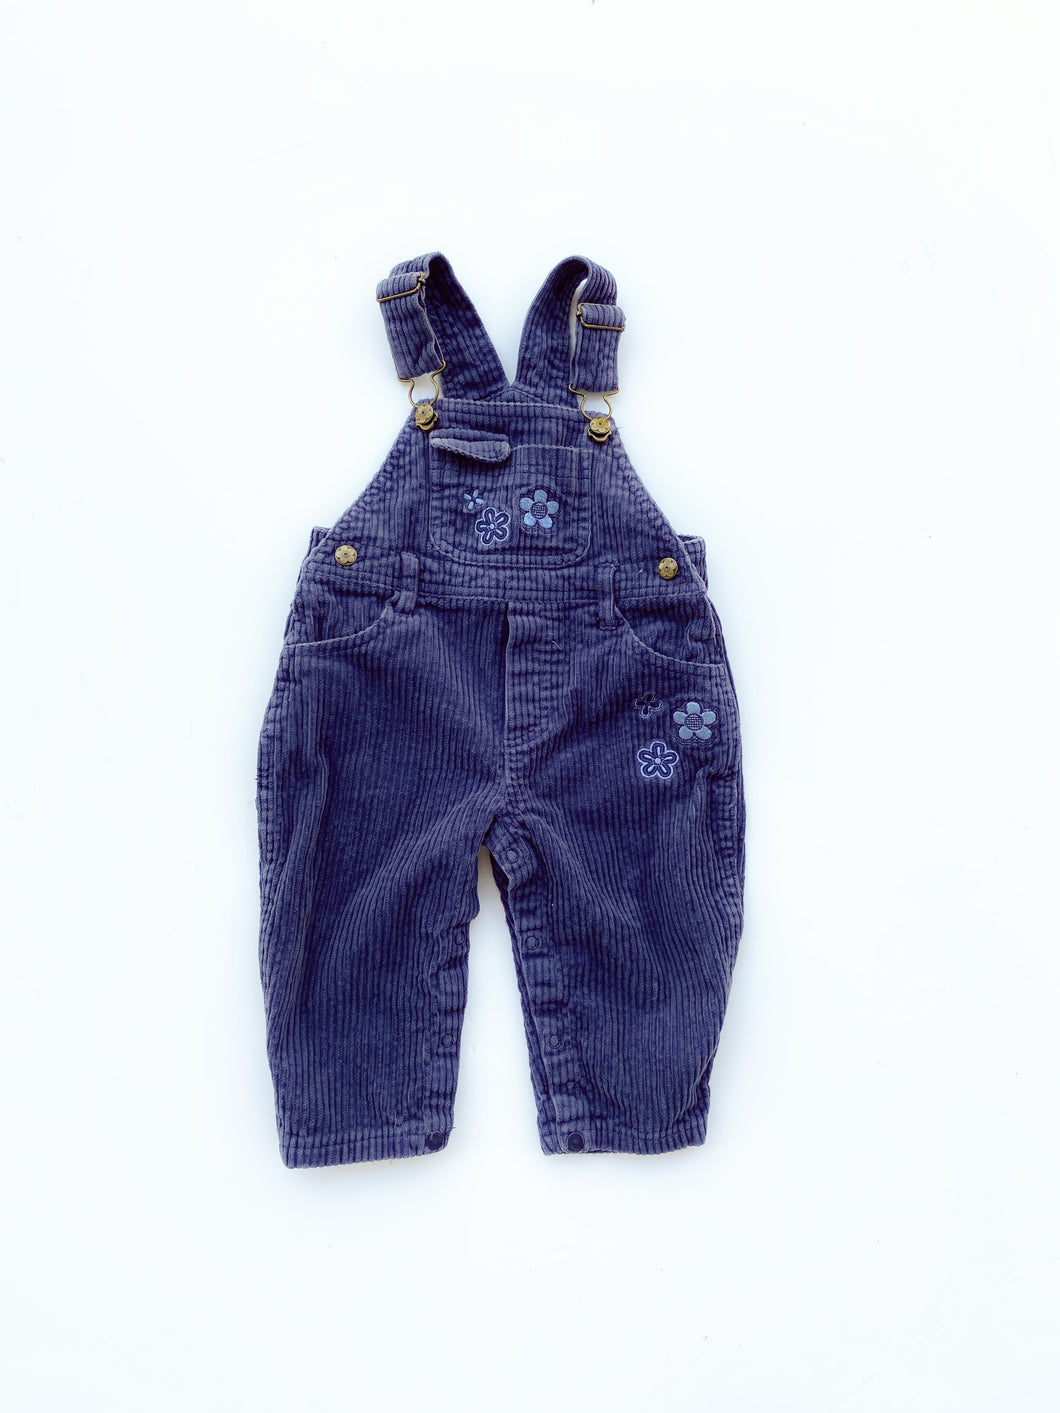 Corduroy Overalls 12-18 months